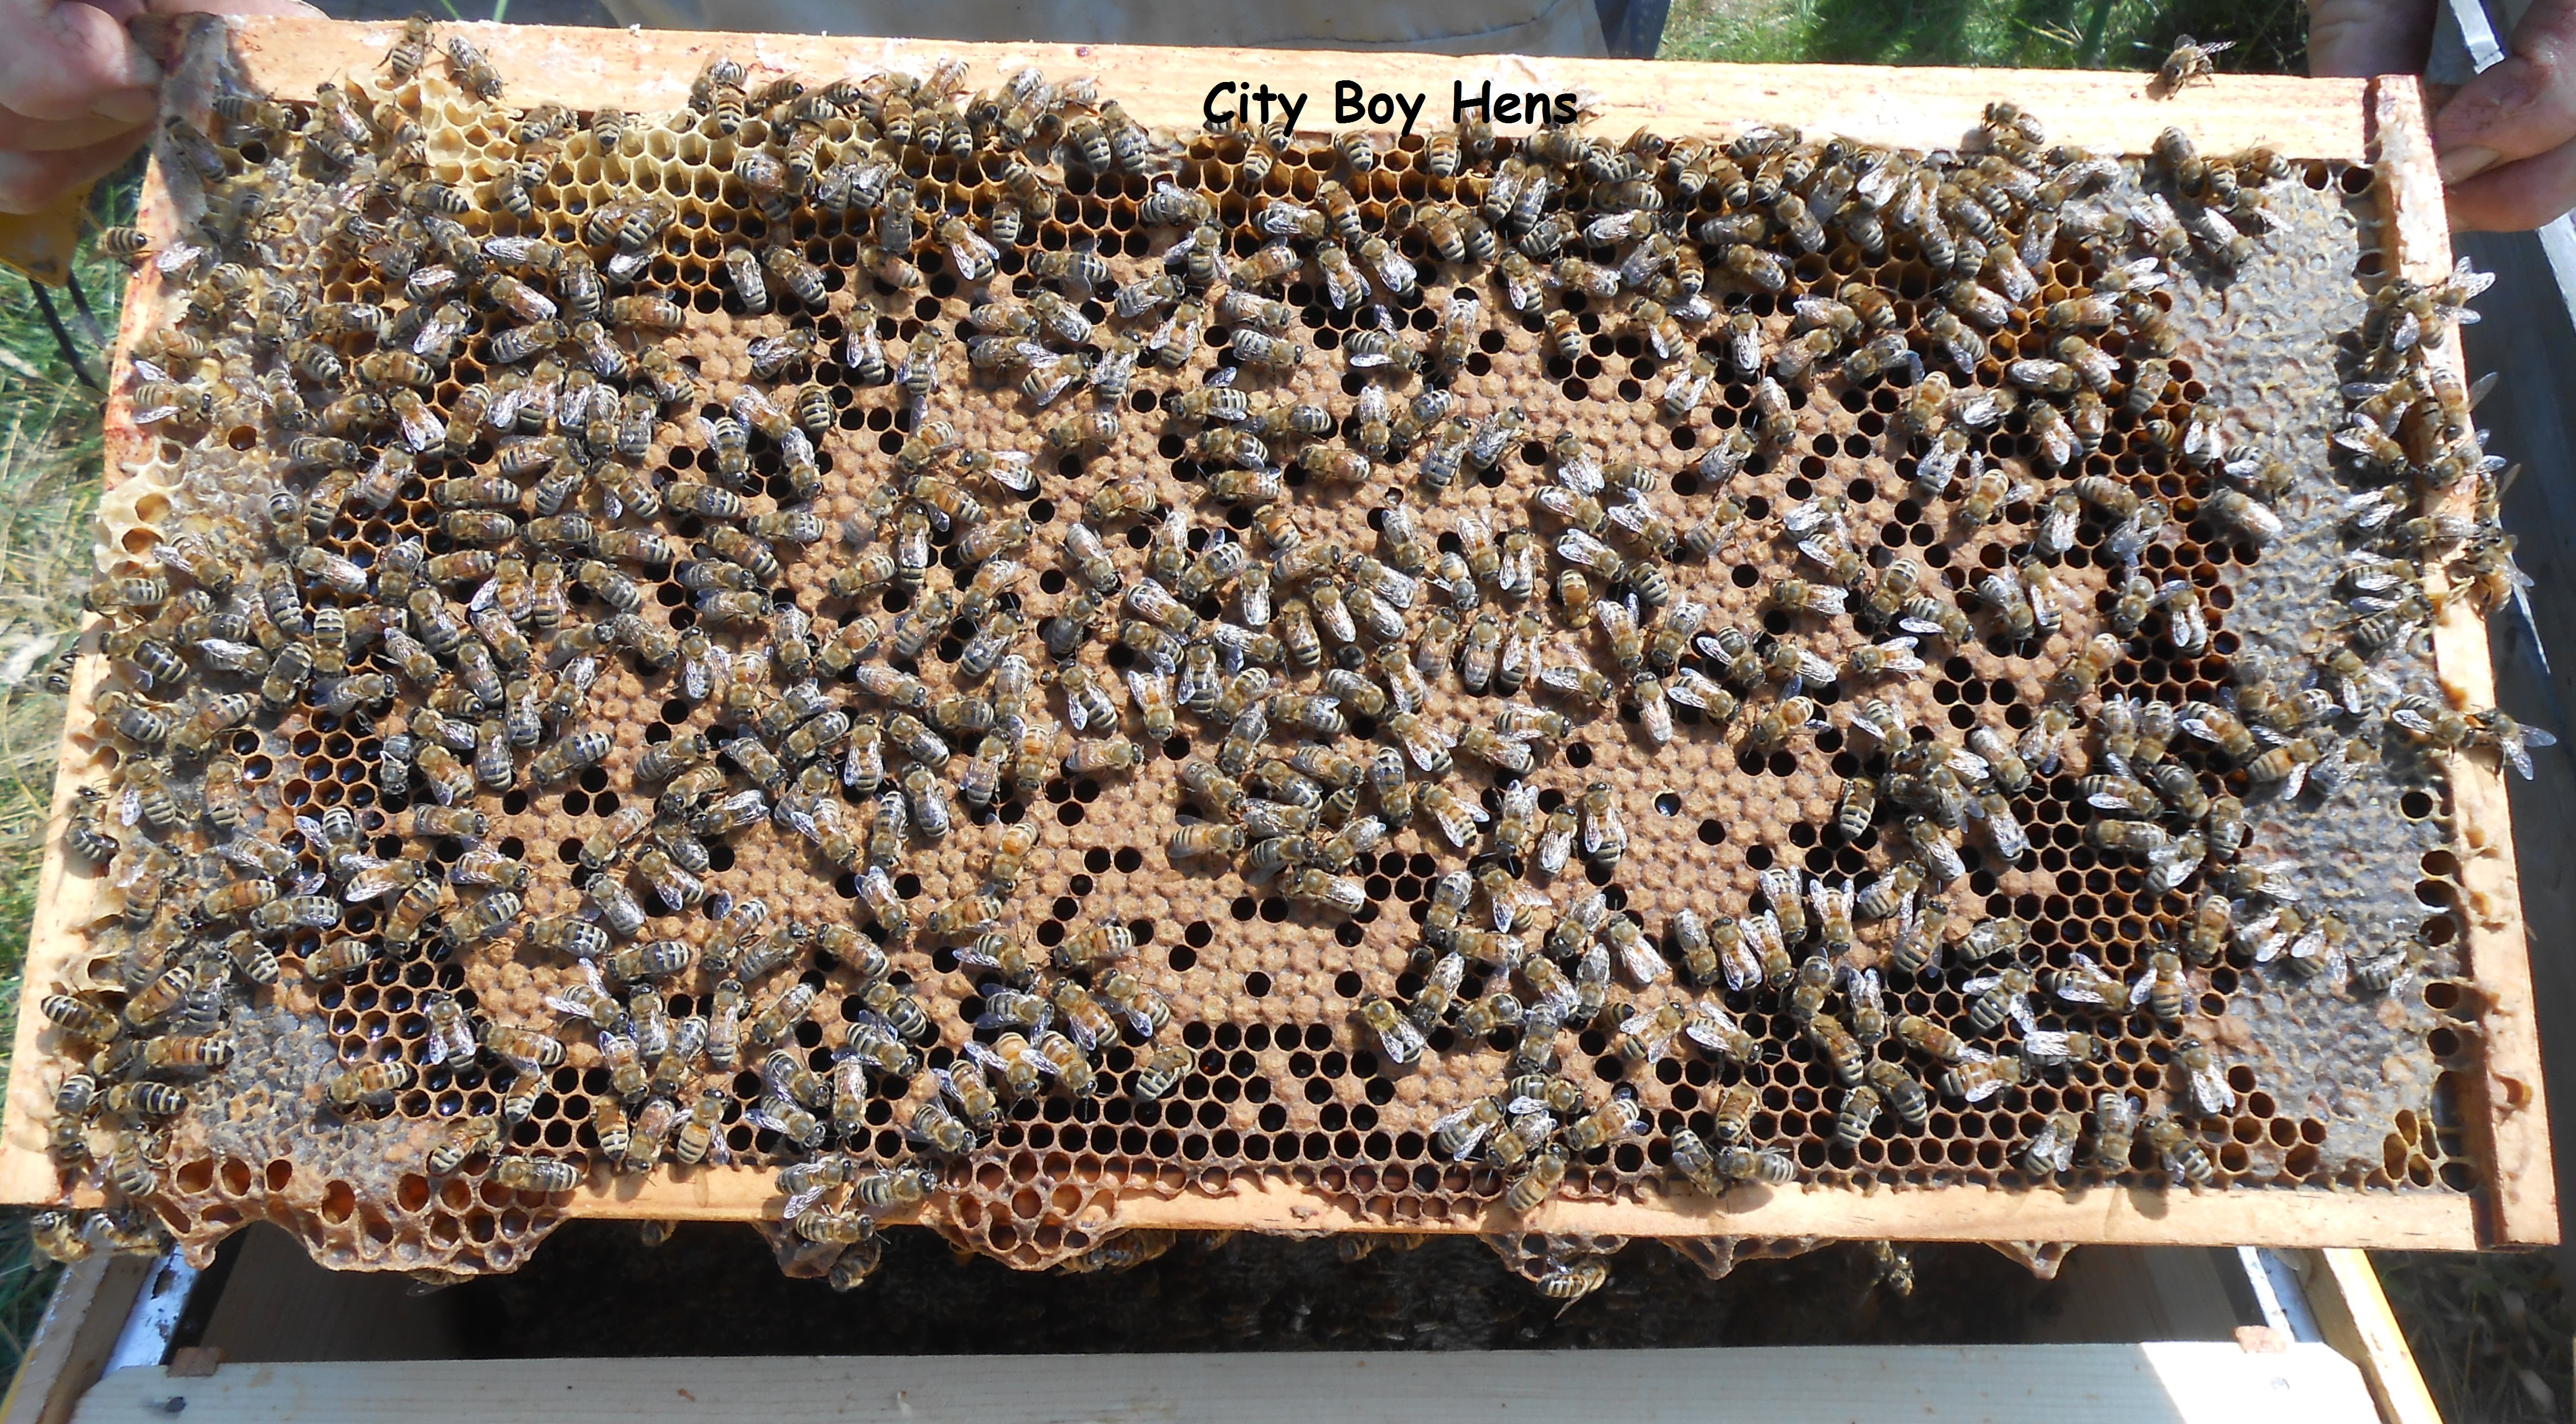 an introduction to bees and the making of their honey The round rock honey beekeeping course is an introduction to bees,  beekeeping, and honey production  our instructors all have significant  beekeeping backgrounds and will ensure that every student leaves our class with  the most.